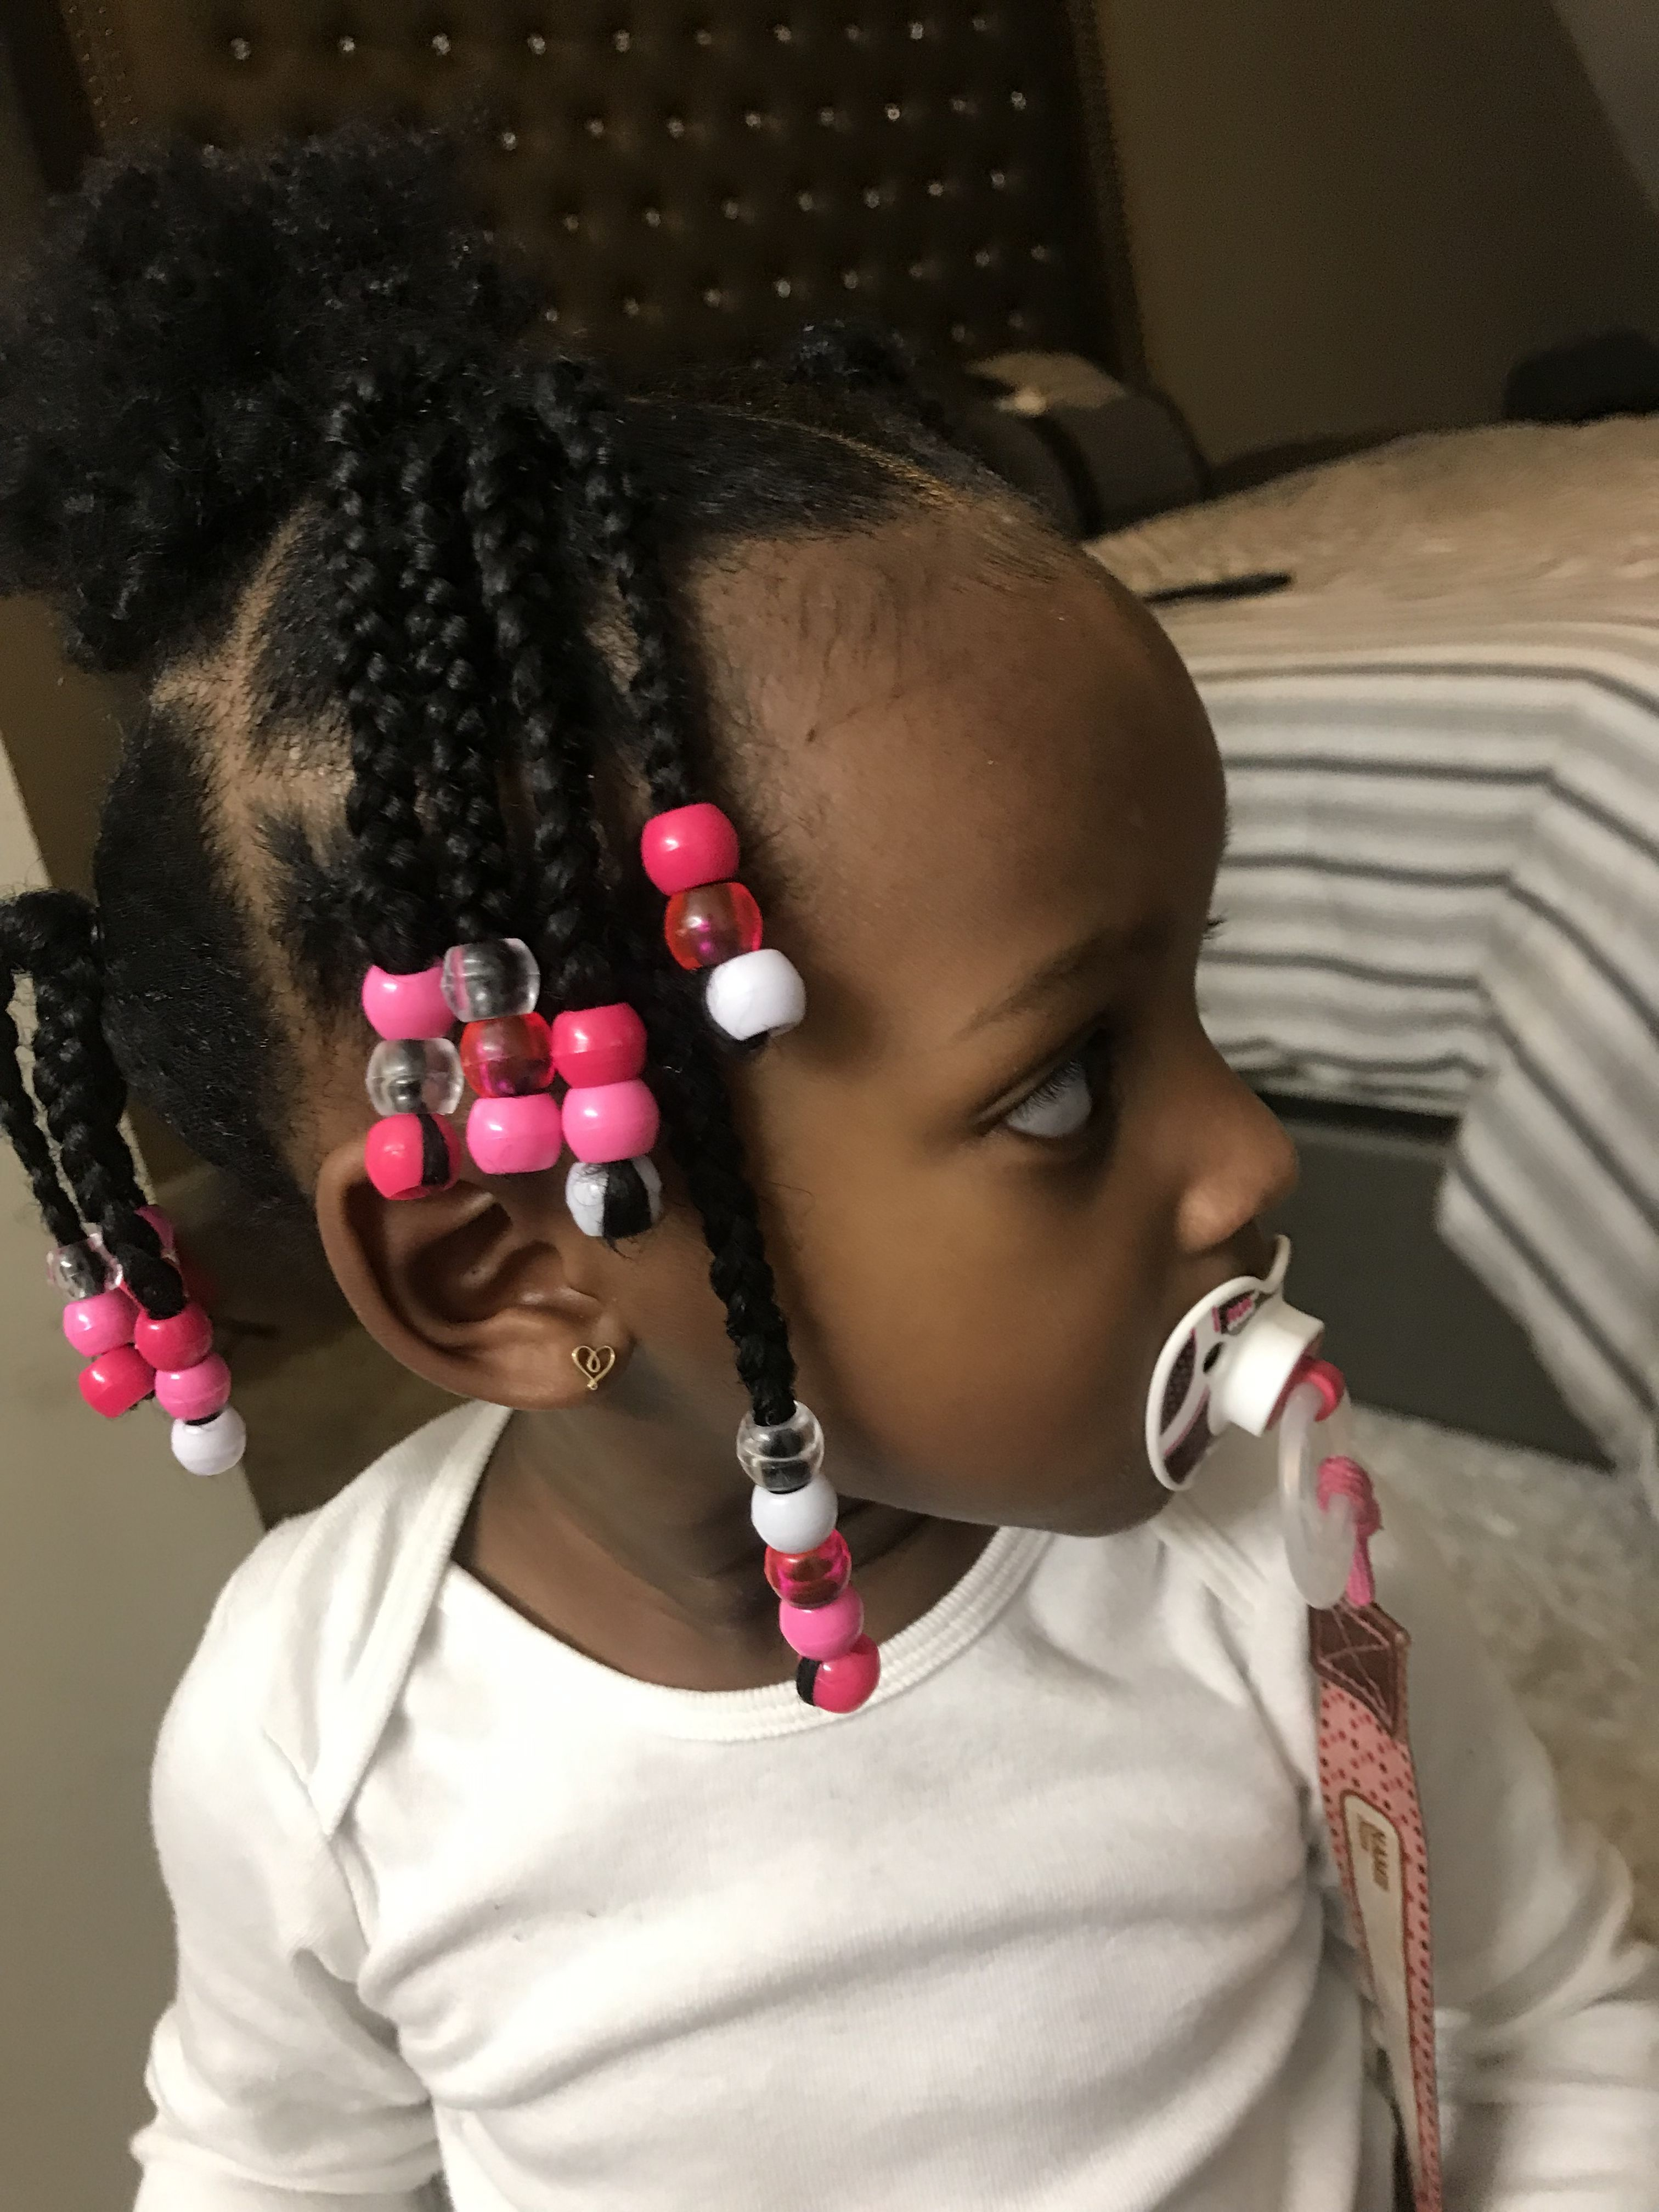 Hairstyles For 1 Year Old Baby Girl : hairstyles, Toddler, Braided, Hairstyles, Braids, Quick, Girls, Hairstyles,, Styles